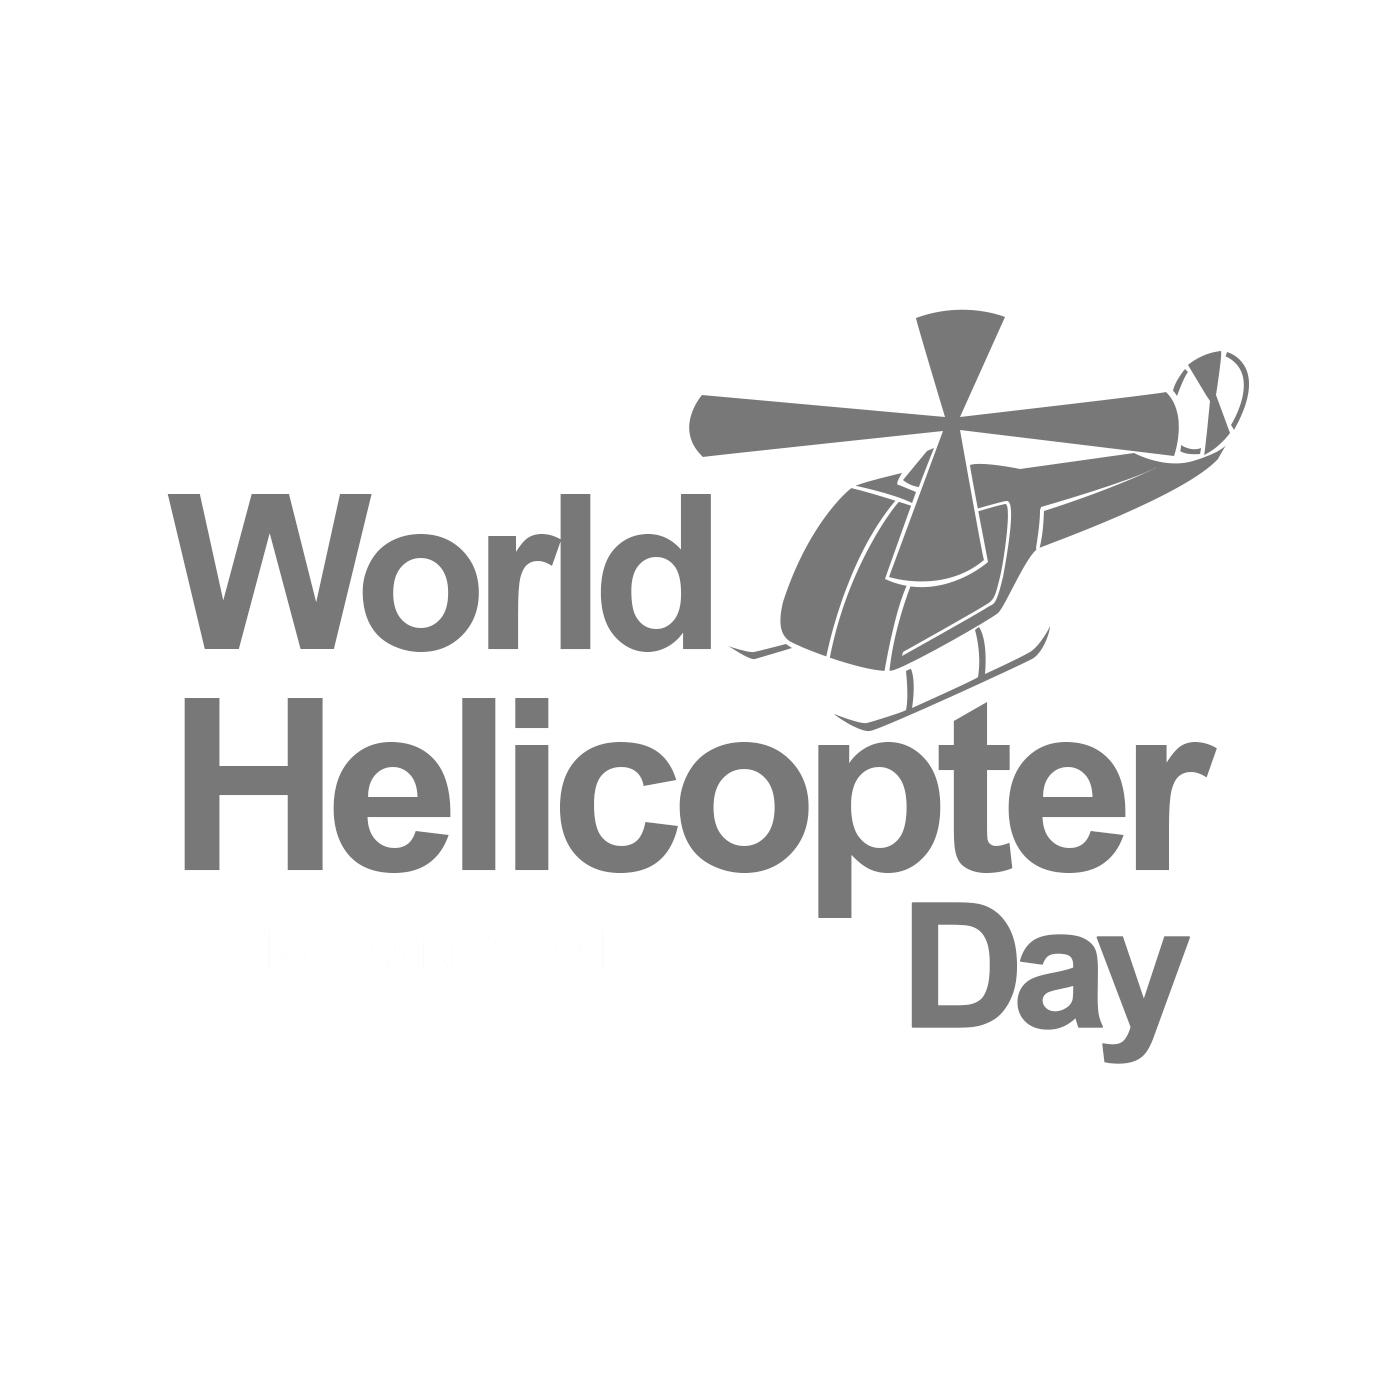 Pictures for Helicopter Day 10